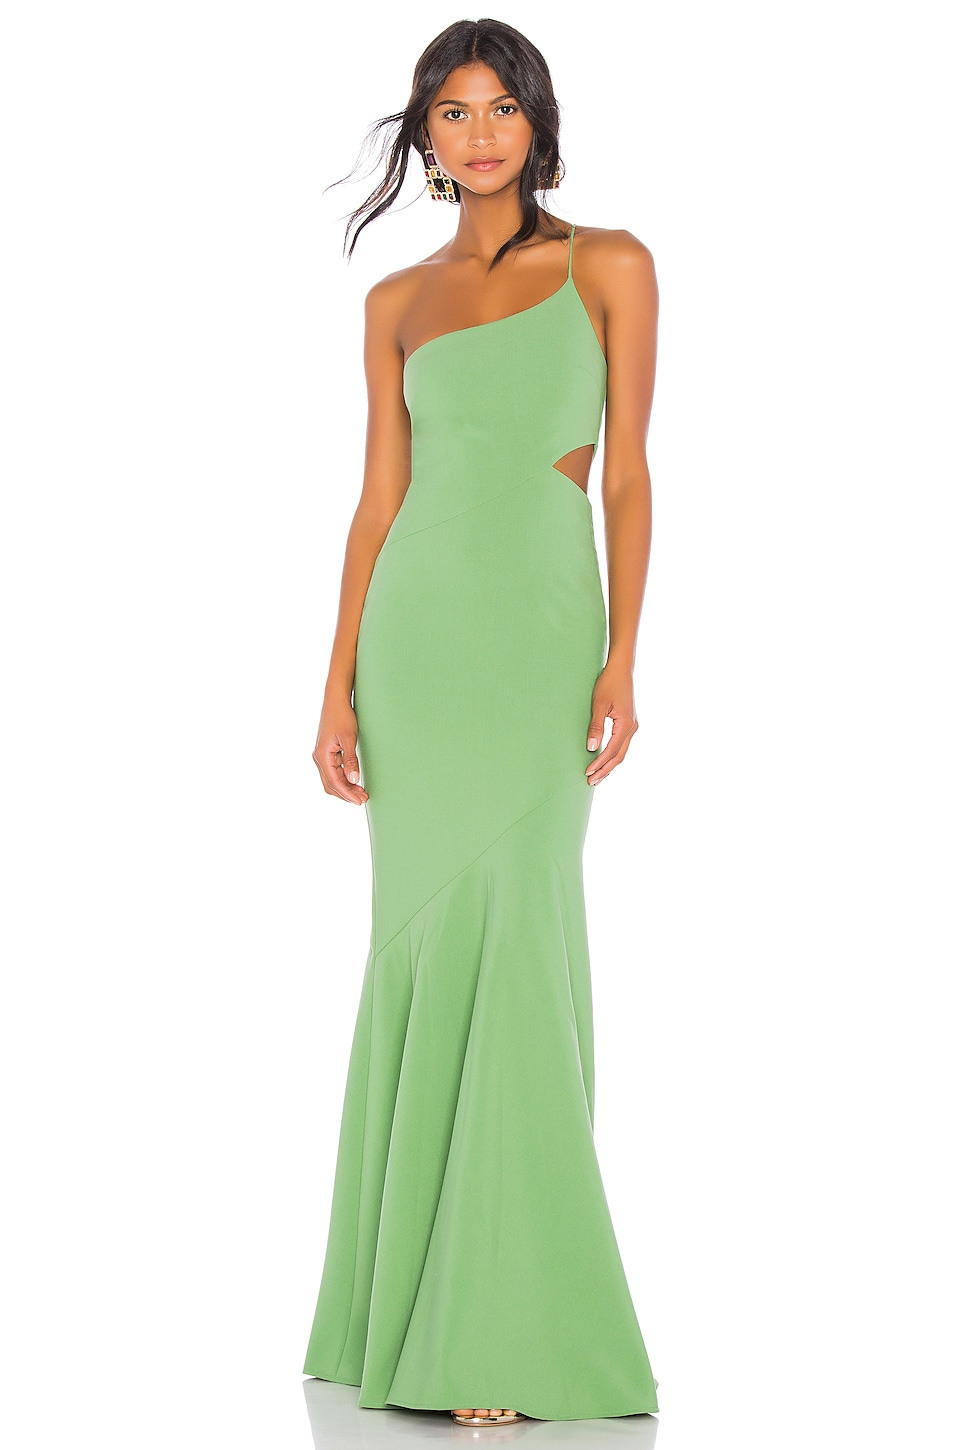 LIKELY x REVOLVE Fina Gown in Juniper